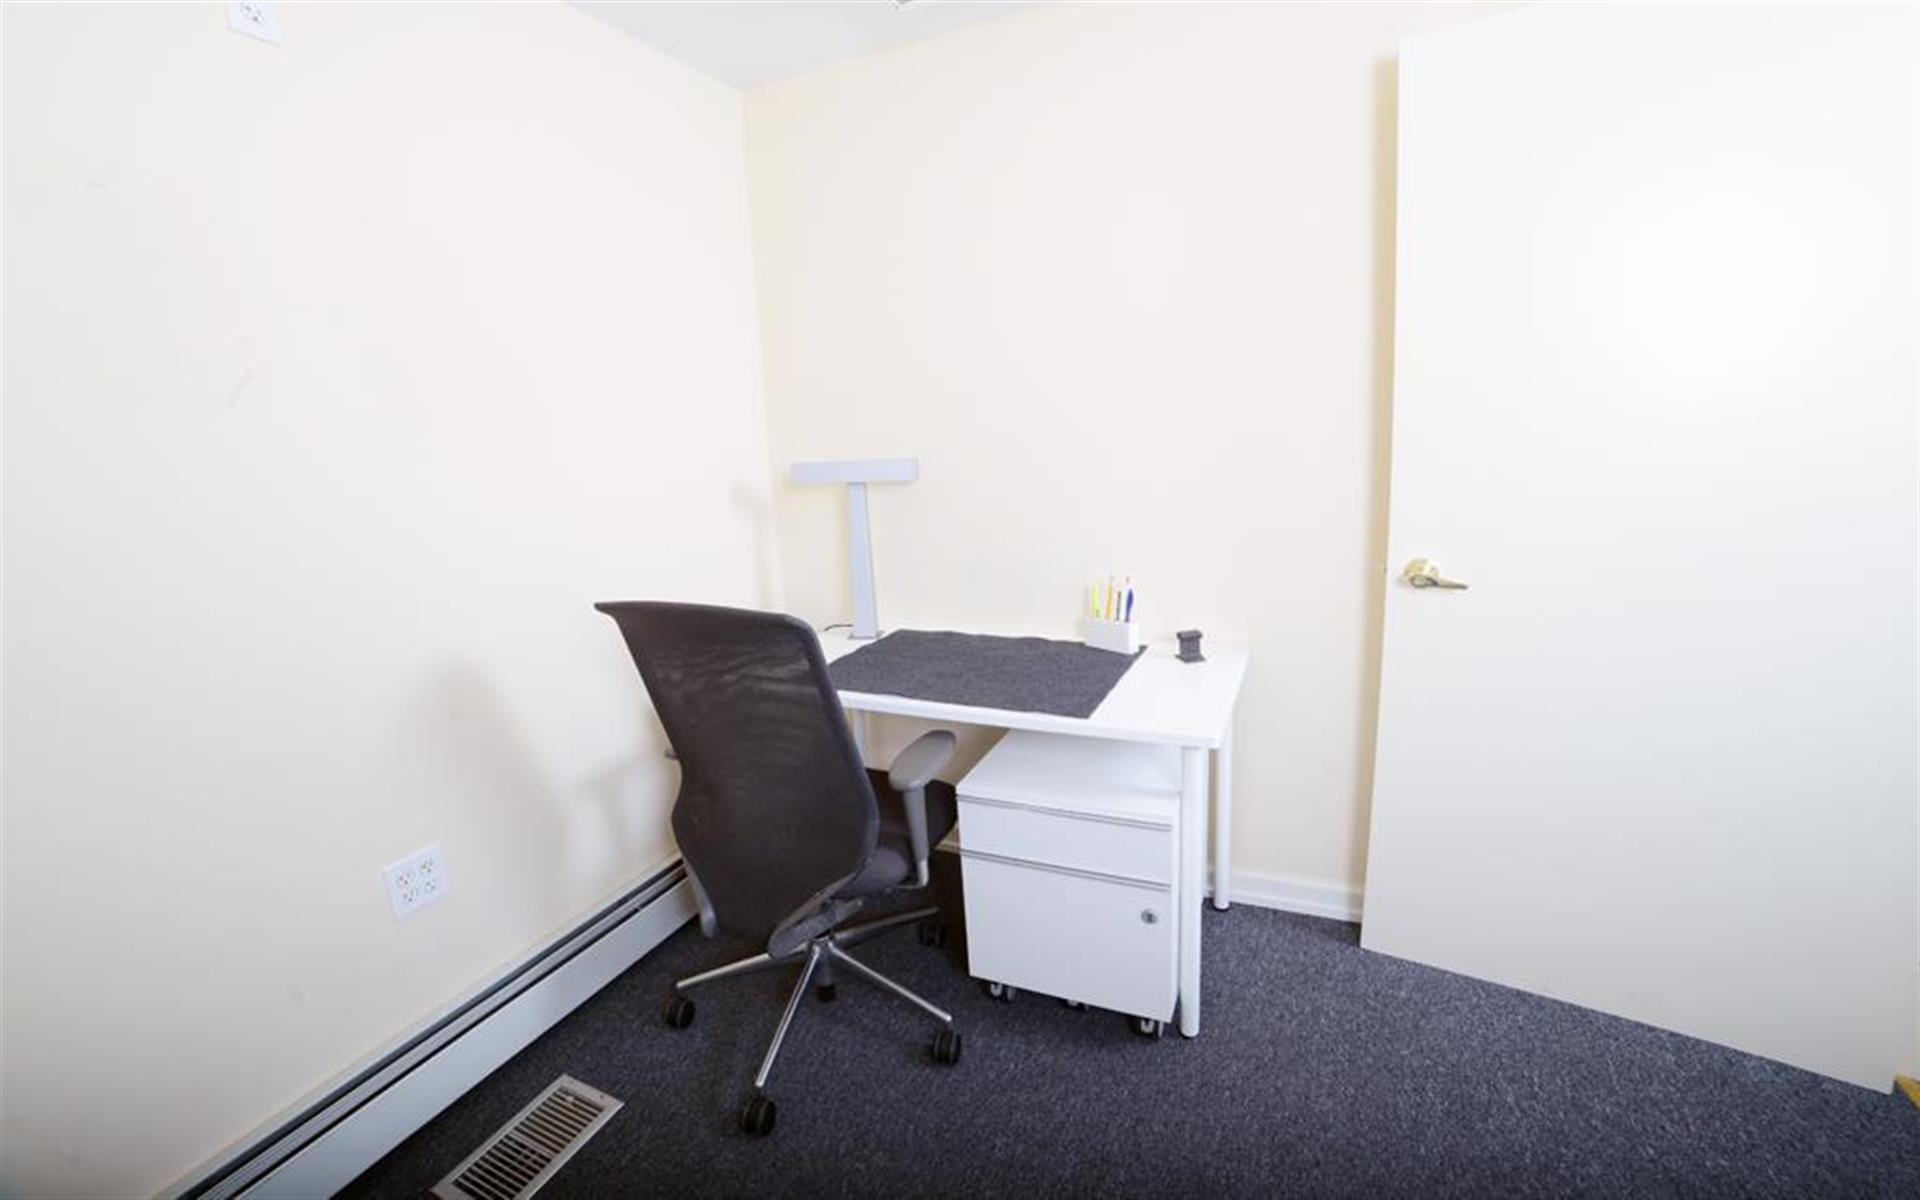 Space69.com - G3 - 2 person office